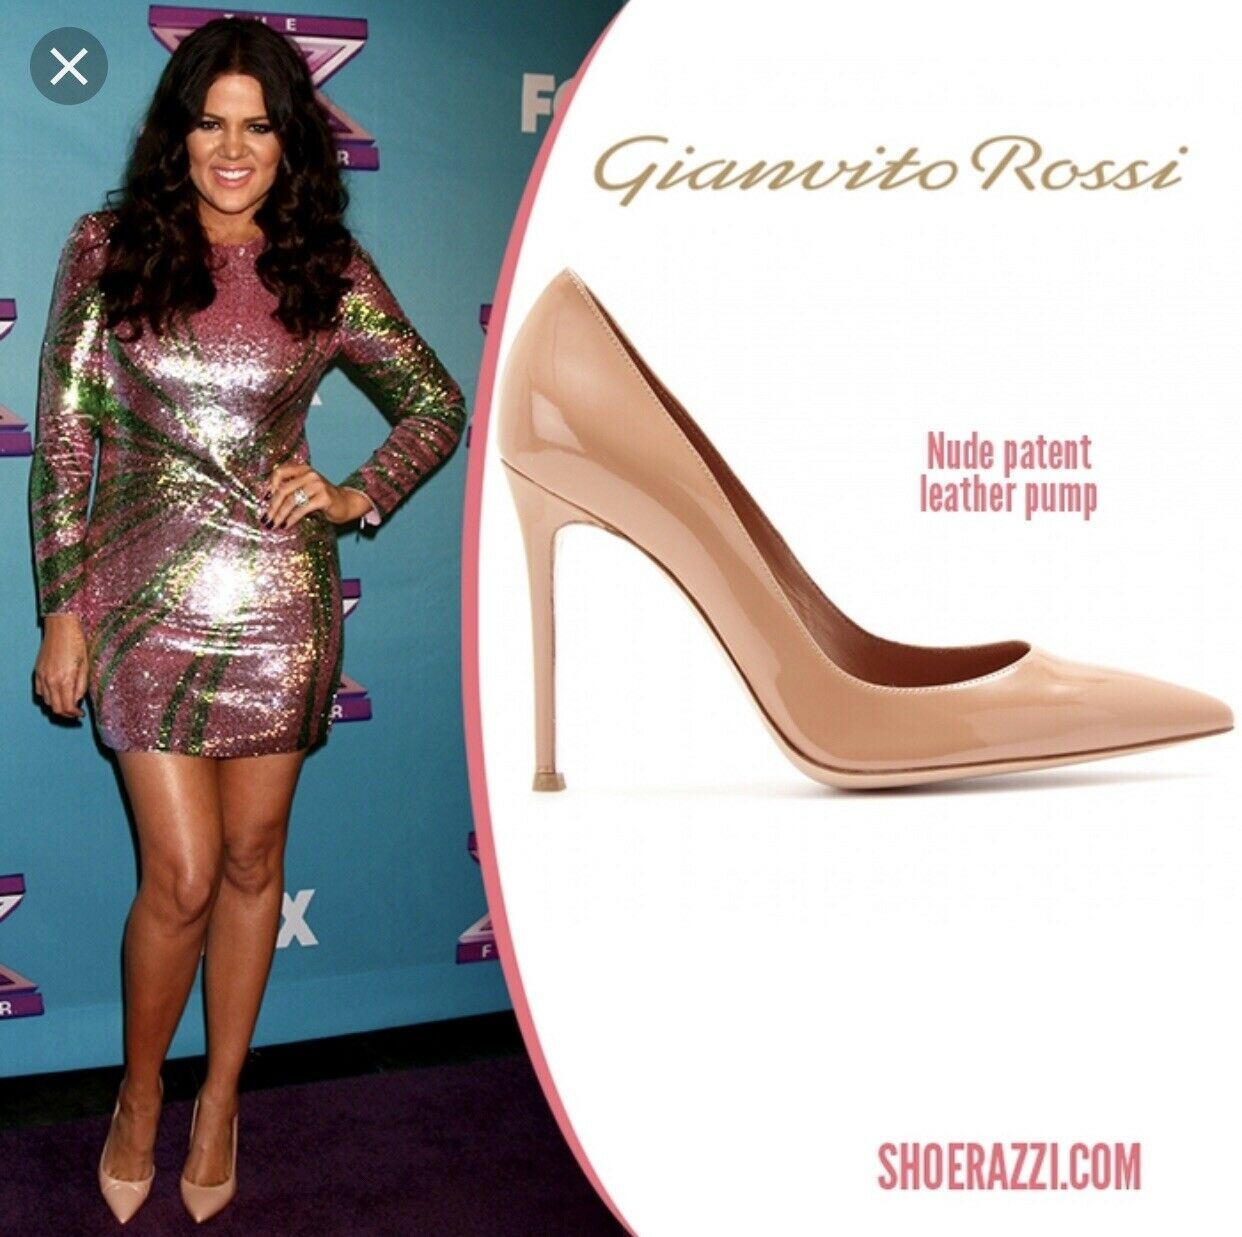 695 Gianvito Rossi 115 Nude Pumps 40 Flawless